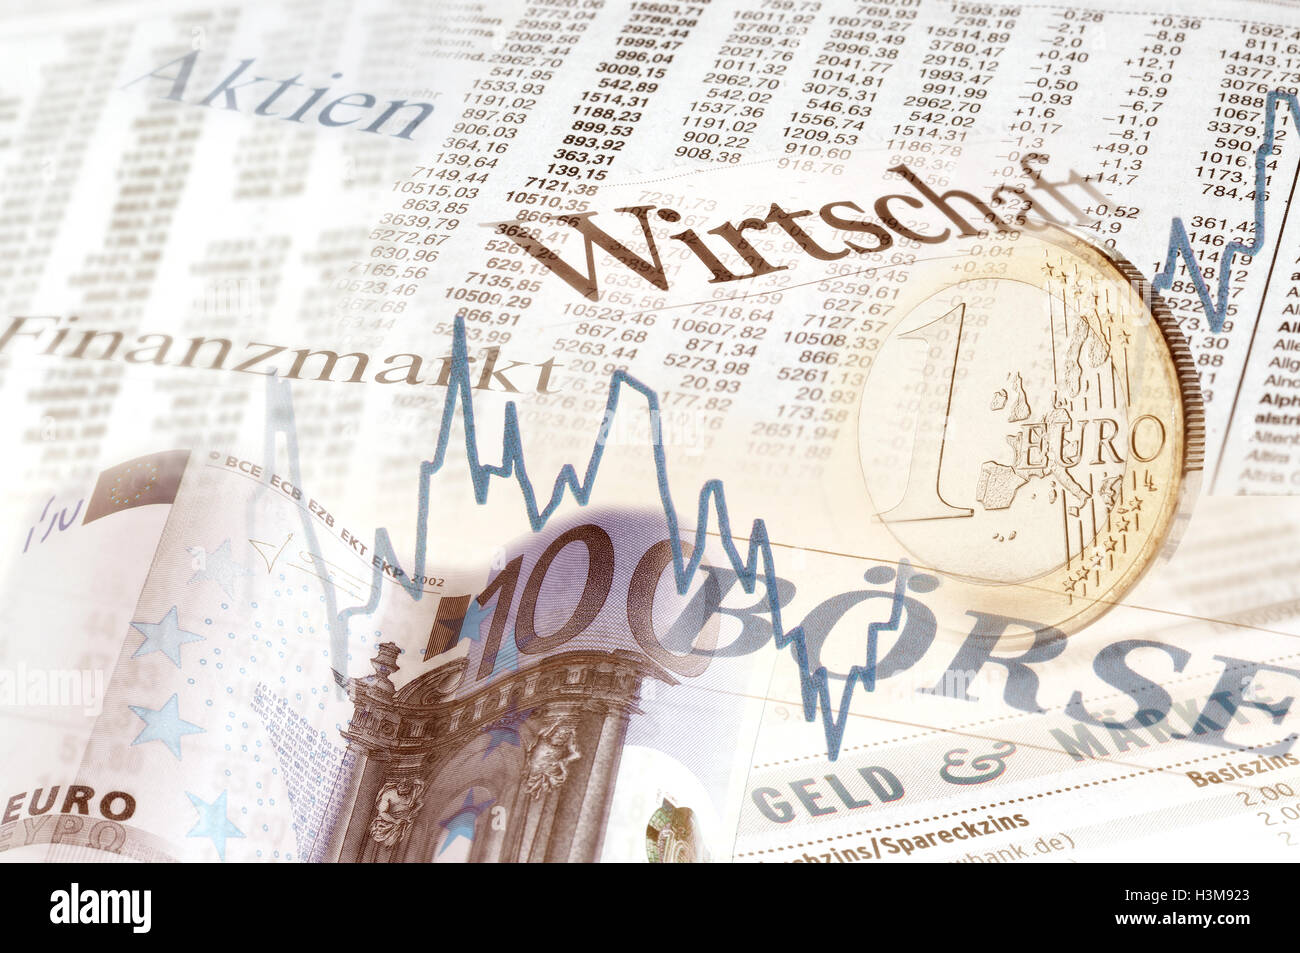 Composing on financial market Stock Photo